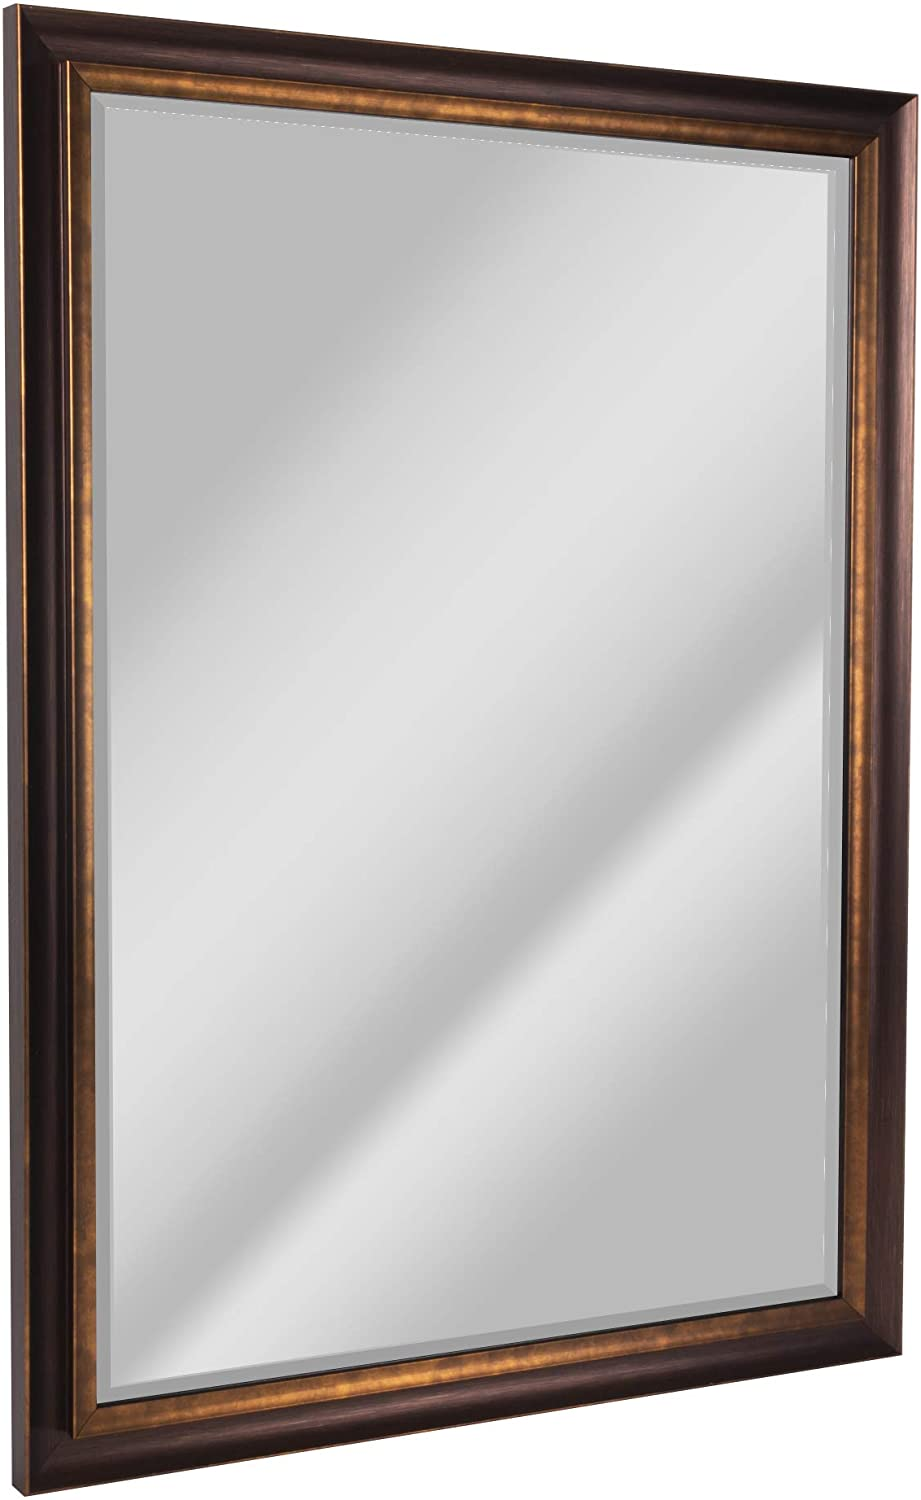 Head West Oil Rubbed Bronze Mirror, 28 by 40-Inch